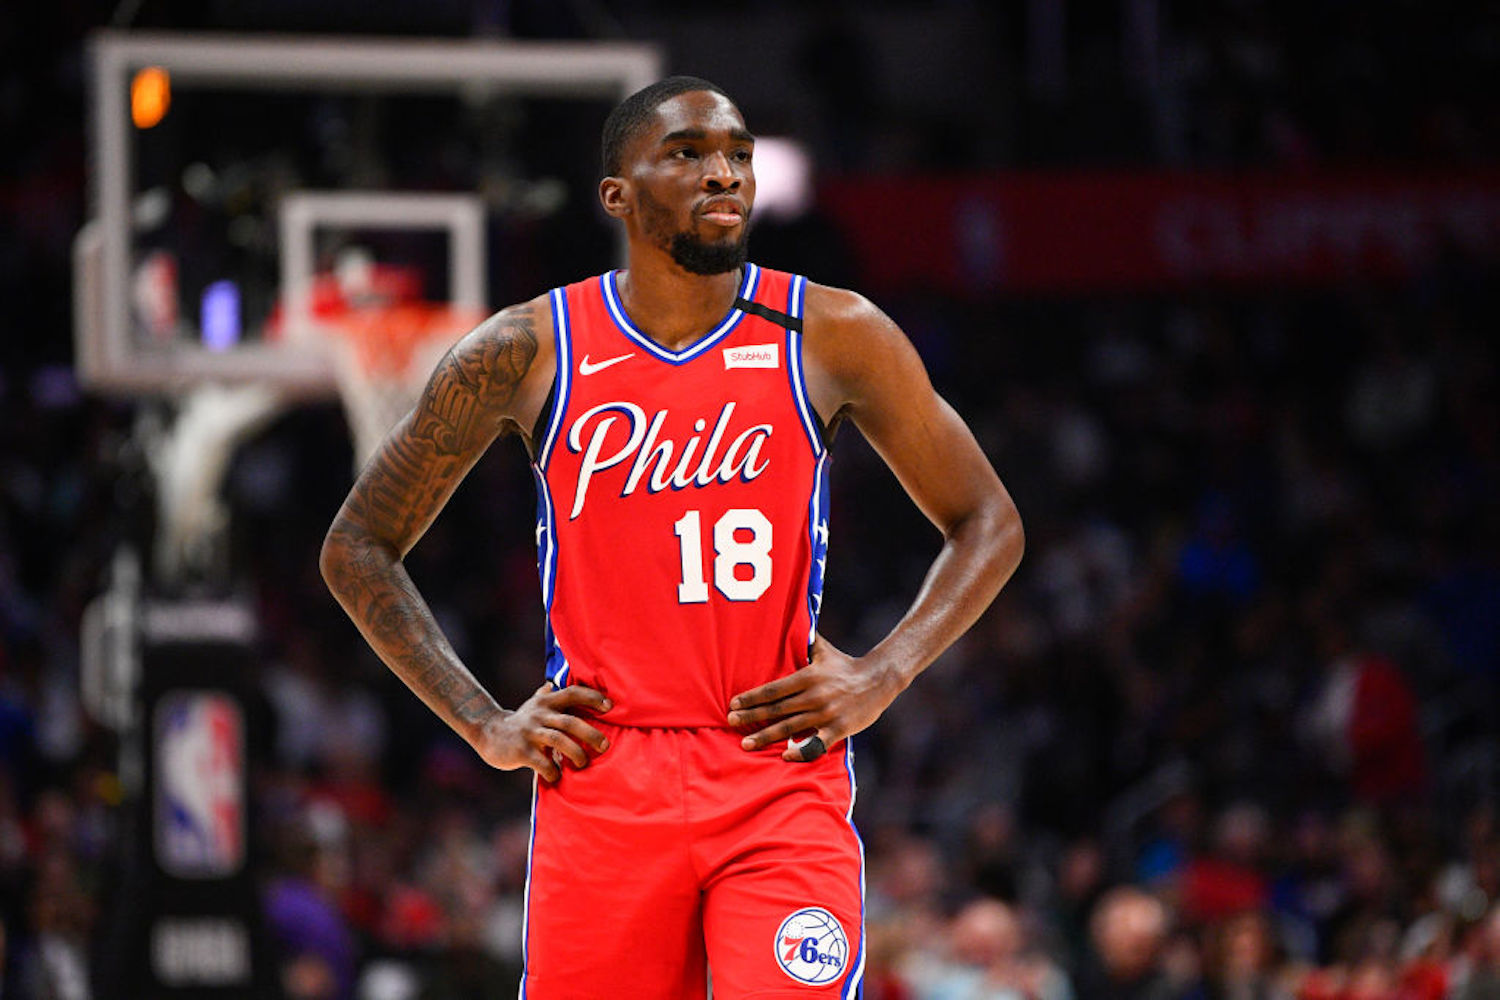 James Harden is interested in joining the Philadelphia 76ers, and Shake Milton may be the trade piece who can make it happen.